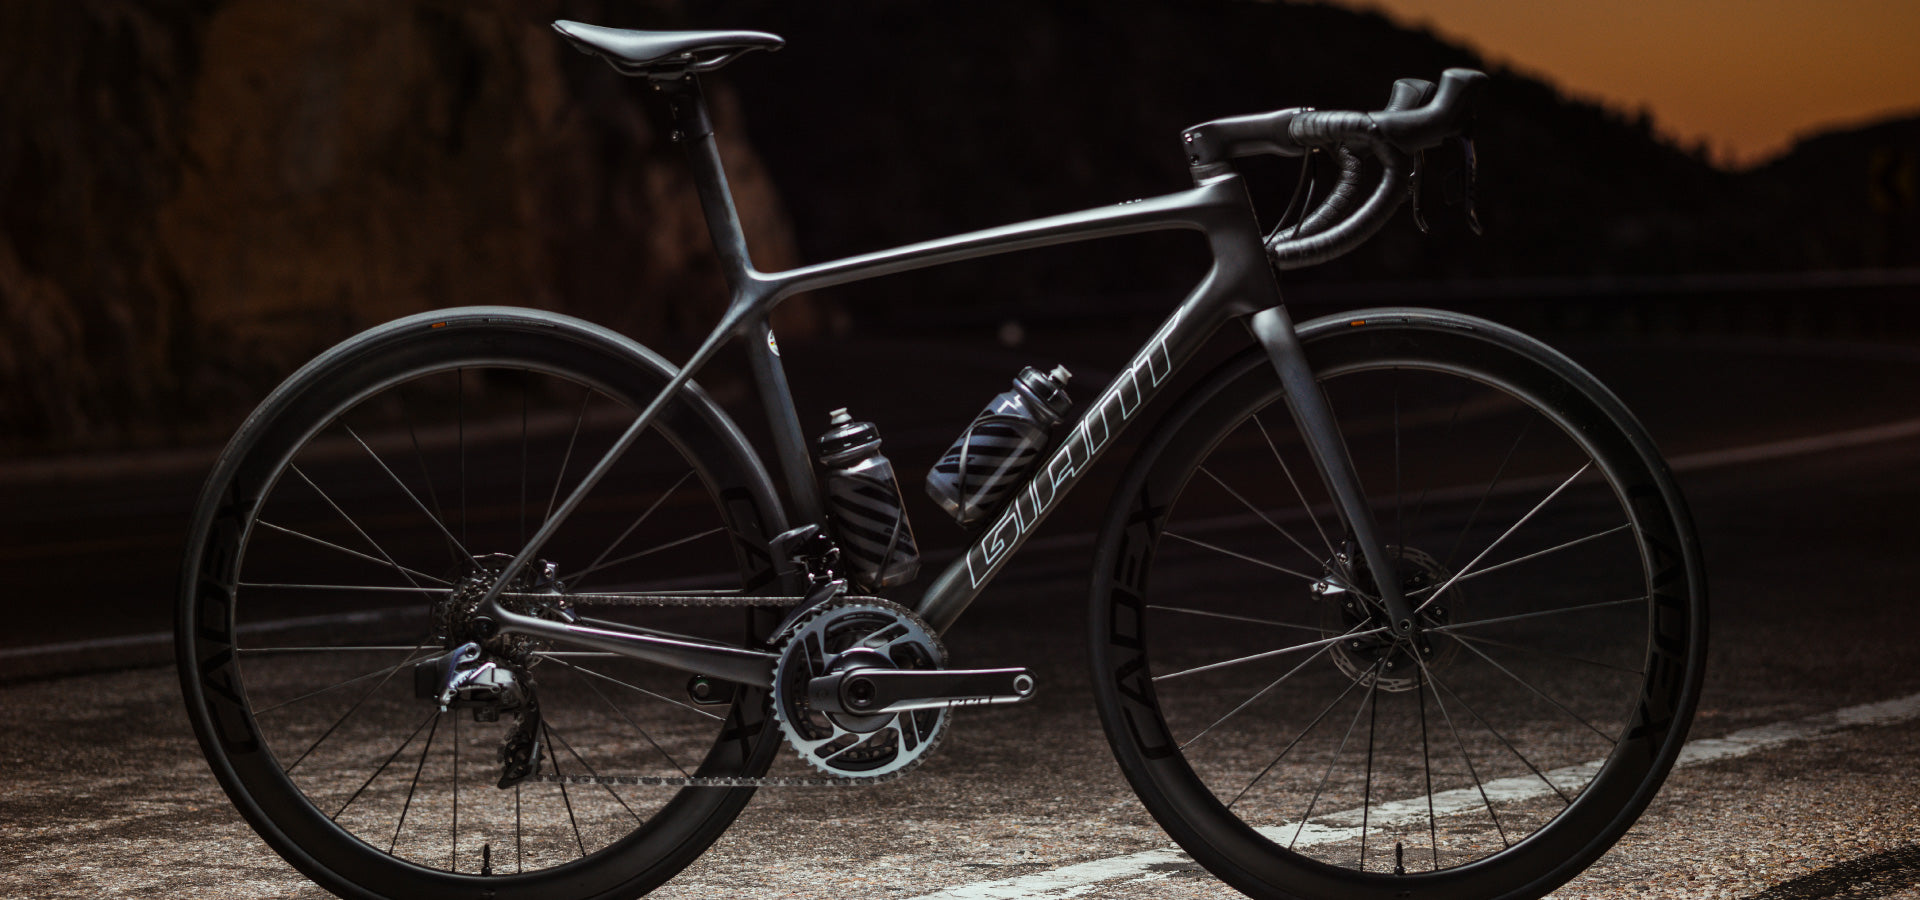 Giant 2021 TCR - 9th generation frame is lighter, stiffer and more aerodynamic